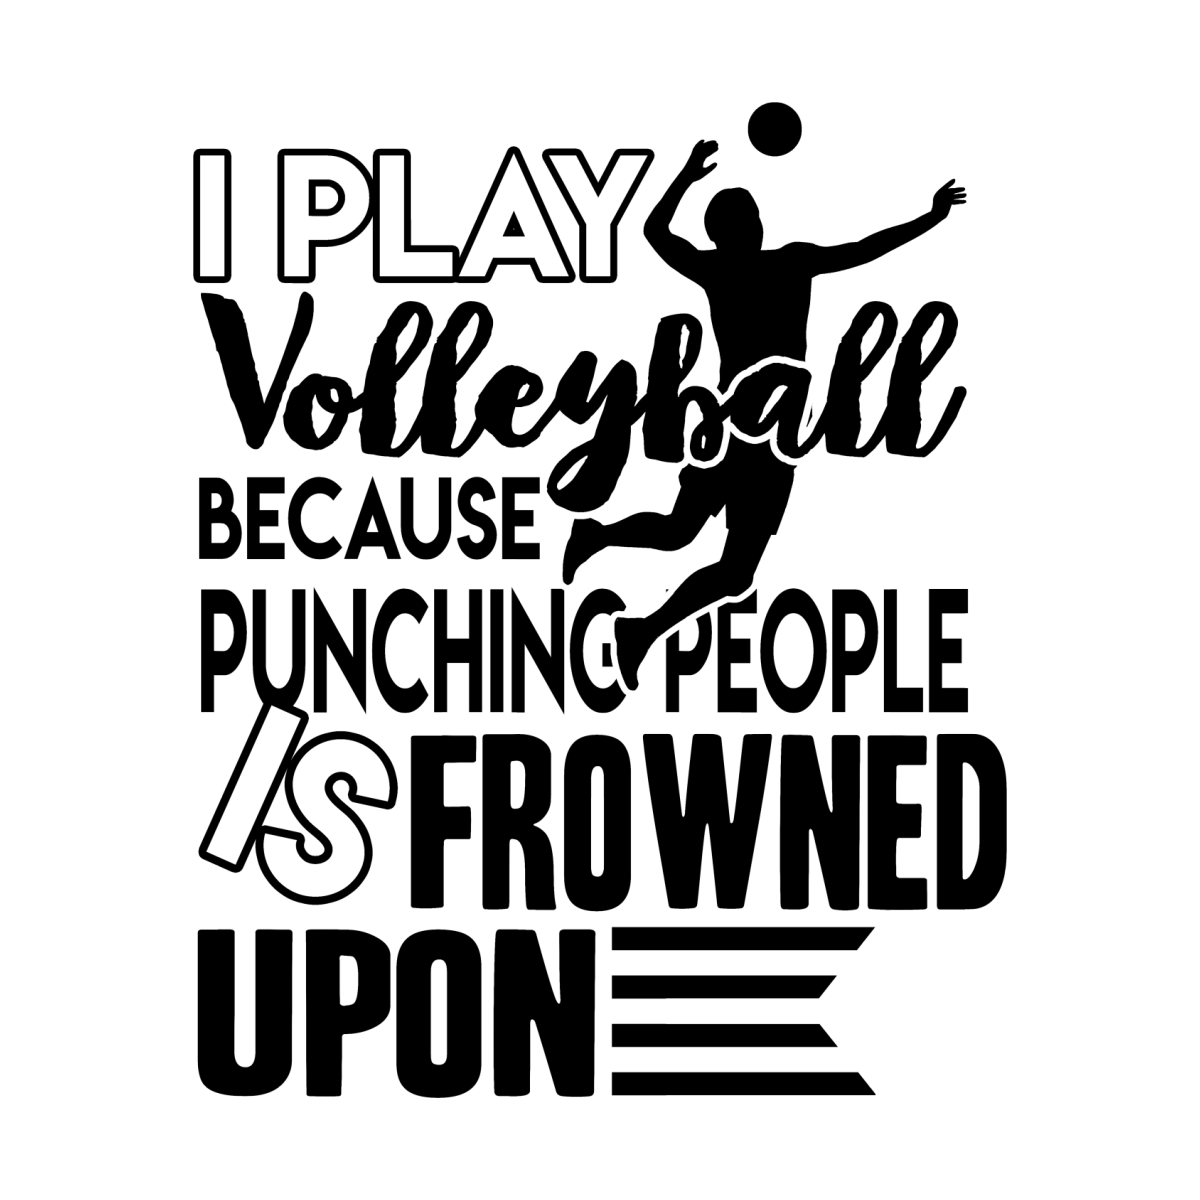 I Play Volleyball Shirt Chachancanh S Artist Shop In 2020 Volleyball Mom Quotes Volleyball Inspiration Volleyball Humor